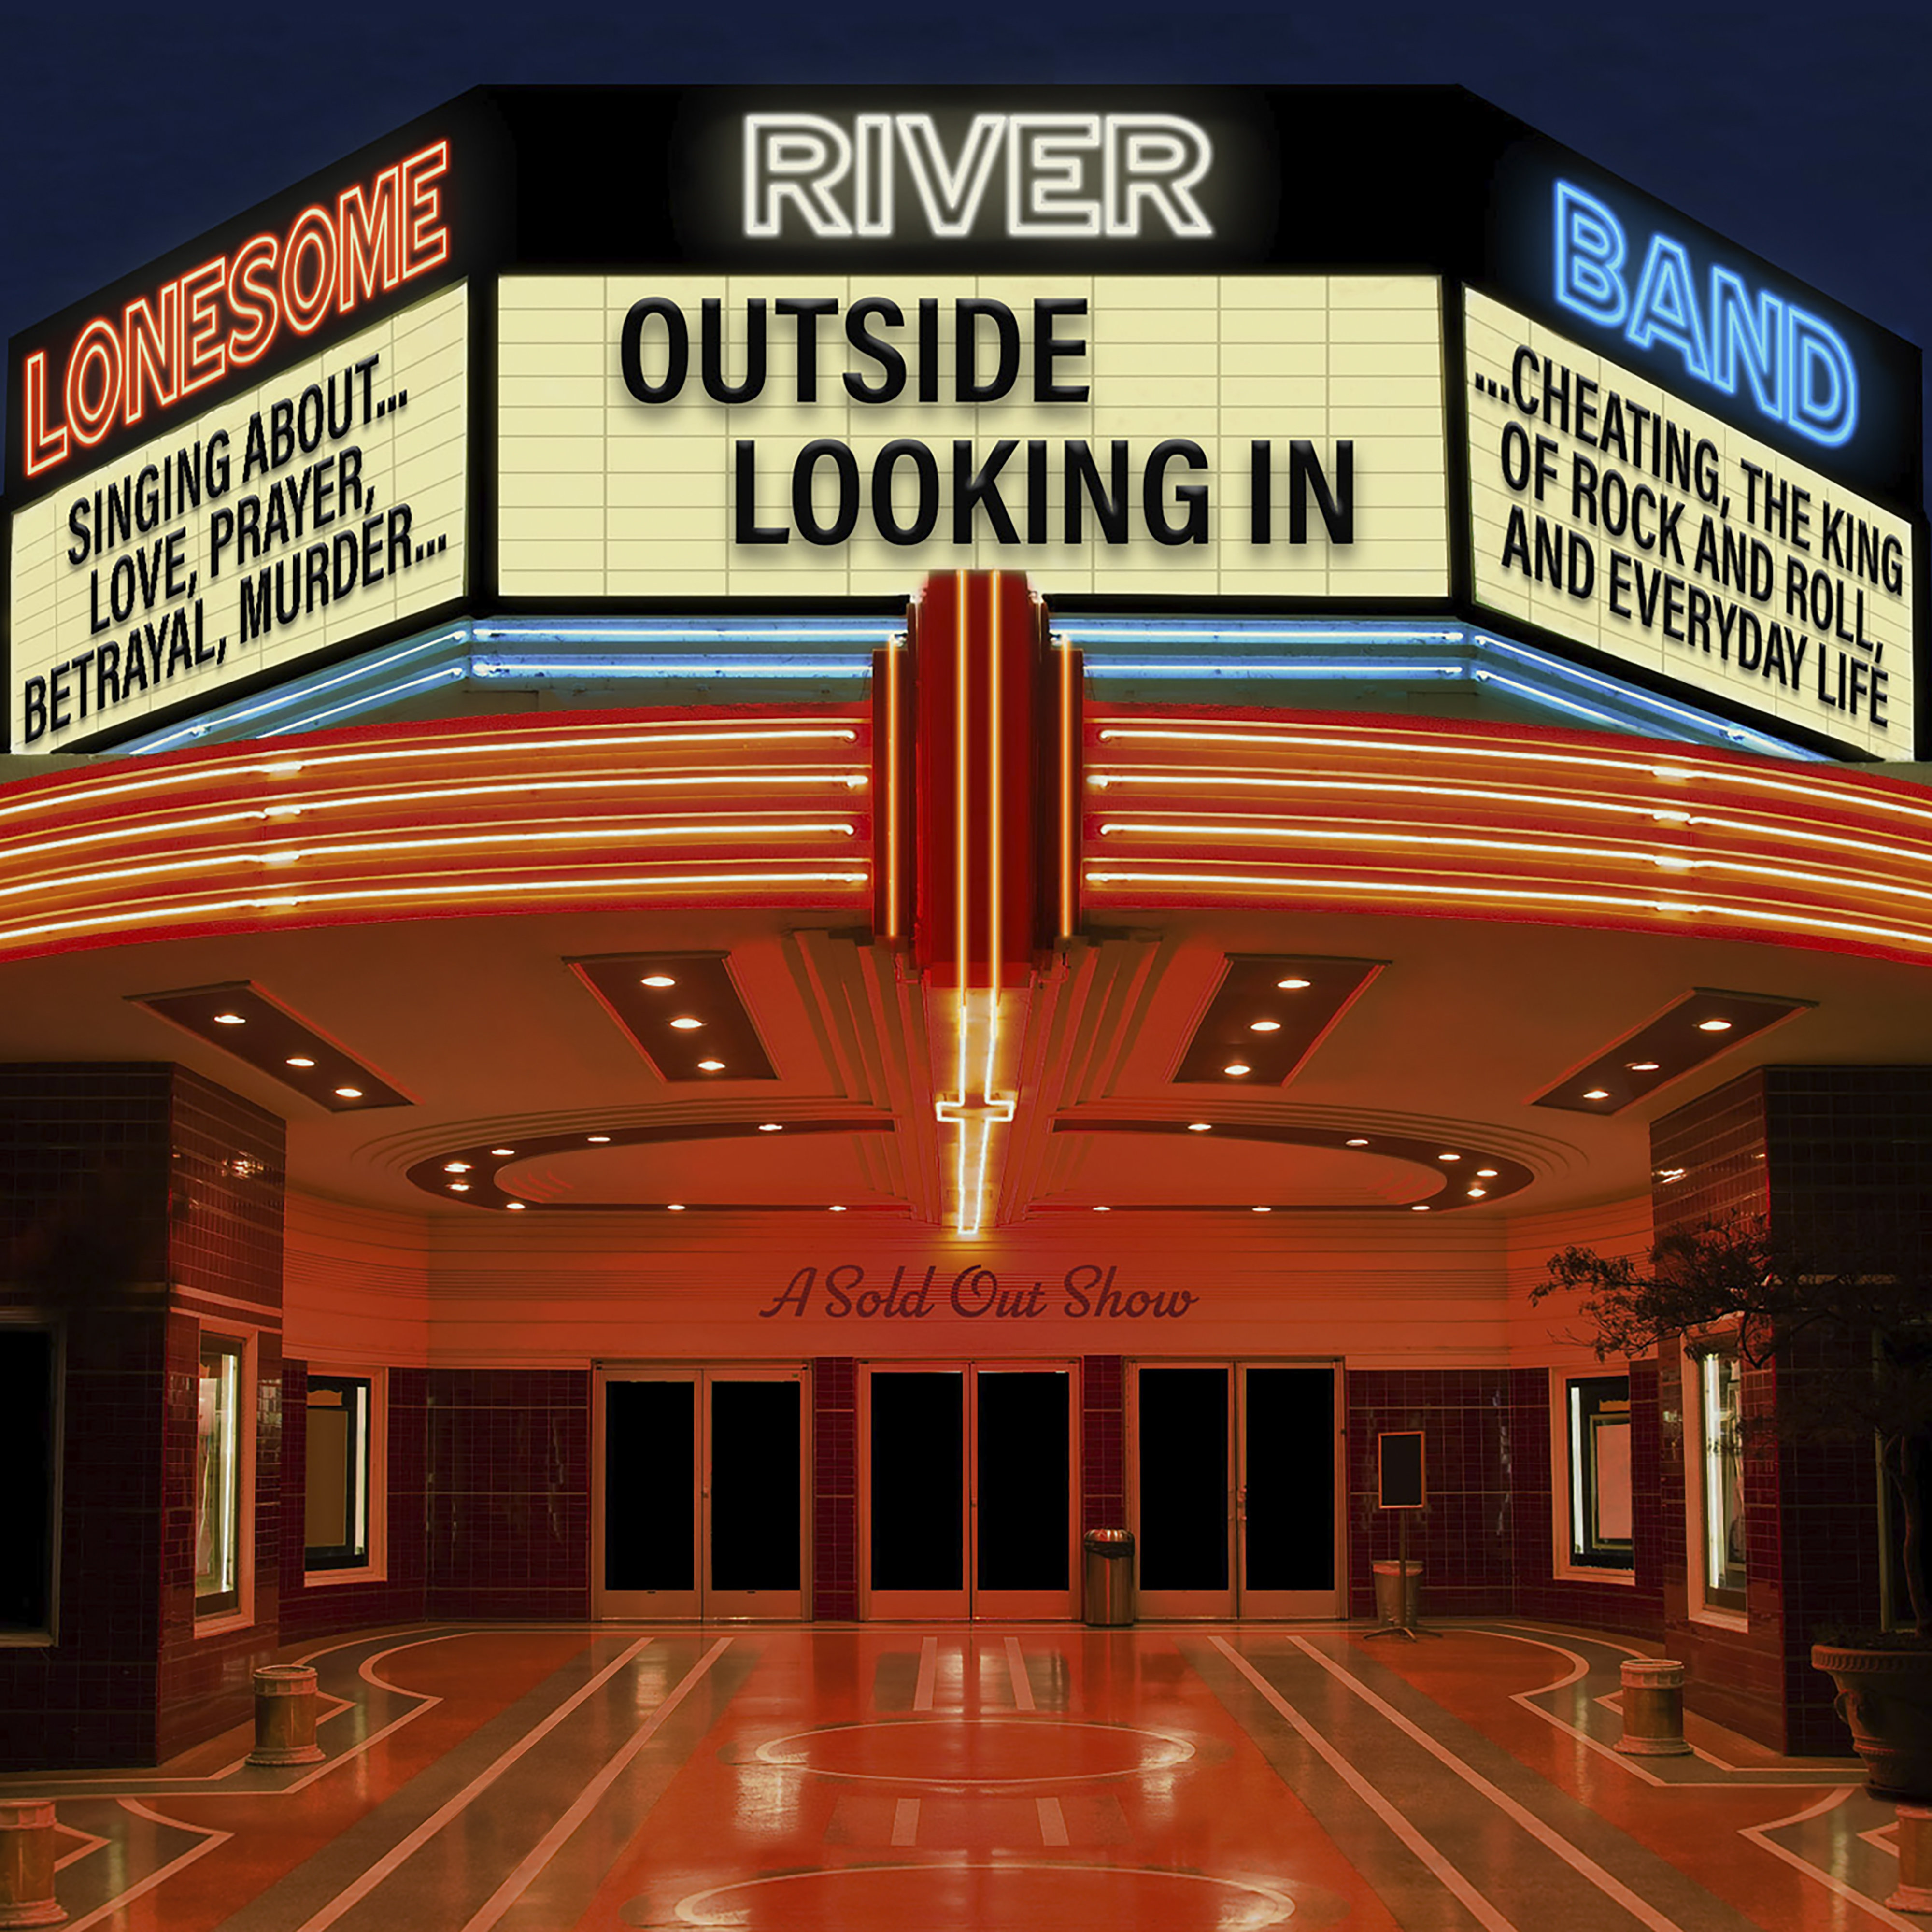 lonesome-river-band-outside